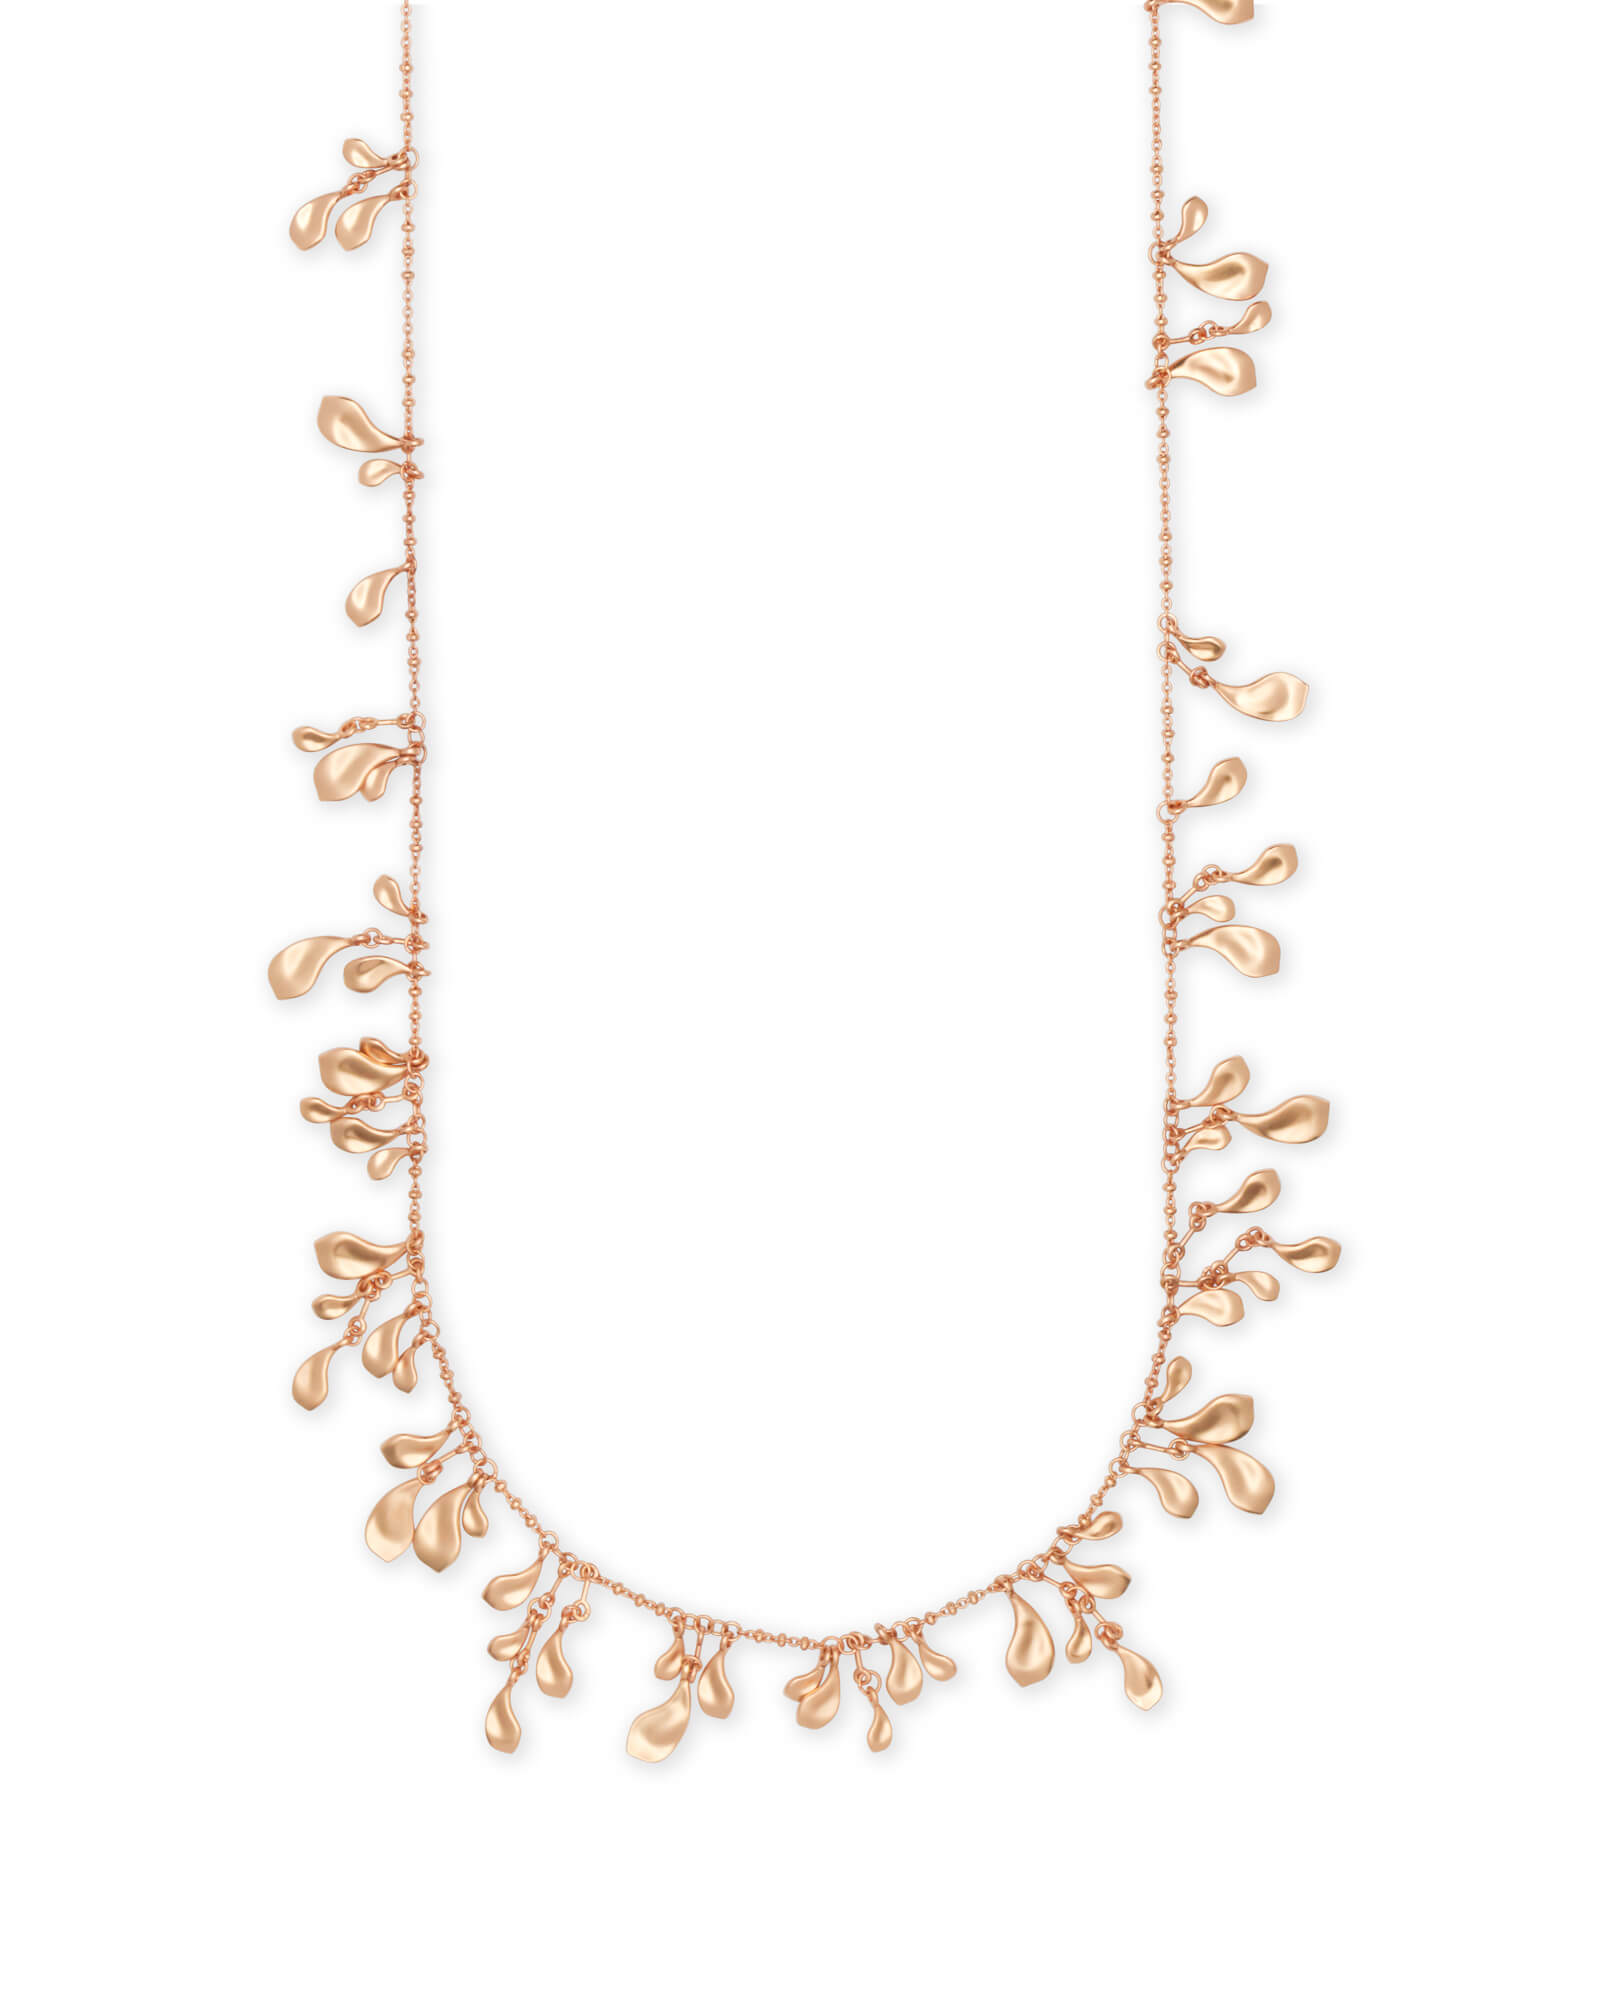 Bella Long Necklace in Rose Gold